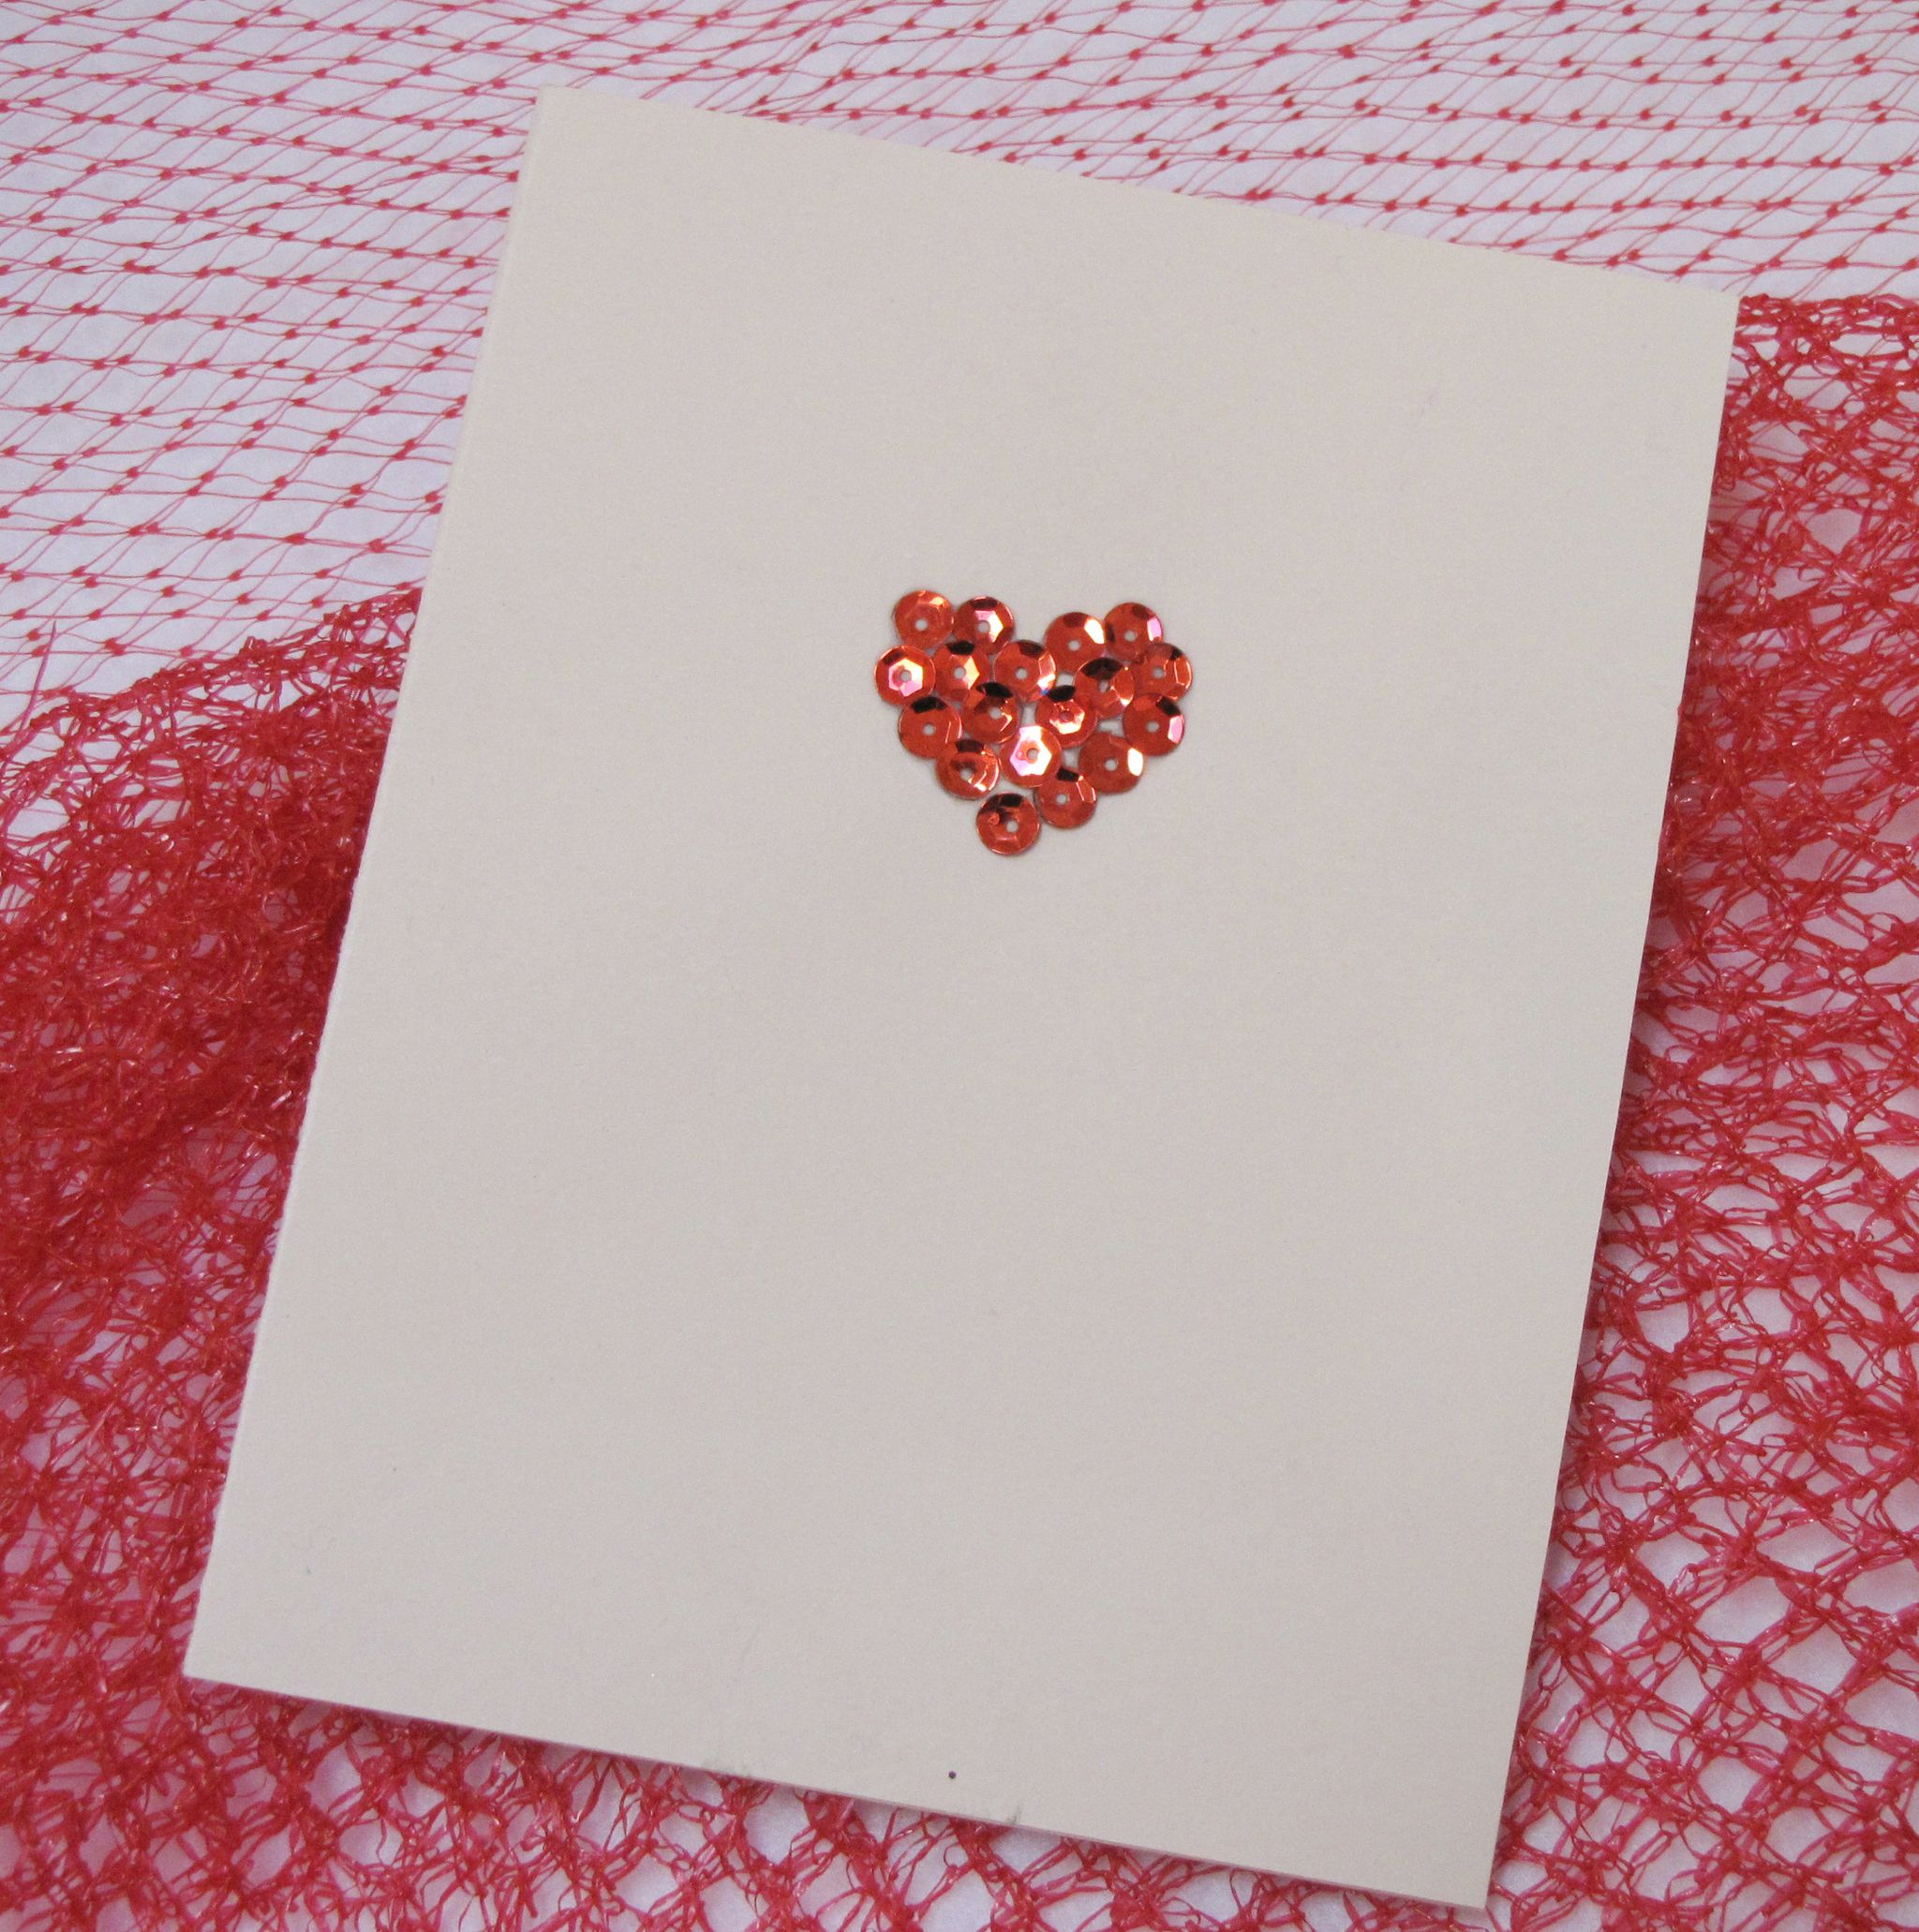 25 Easy Diy Valentines Day Gift And Card Ideas: 15 DIY Valentines For The One You Love